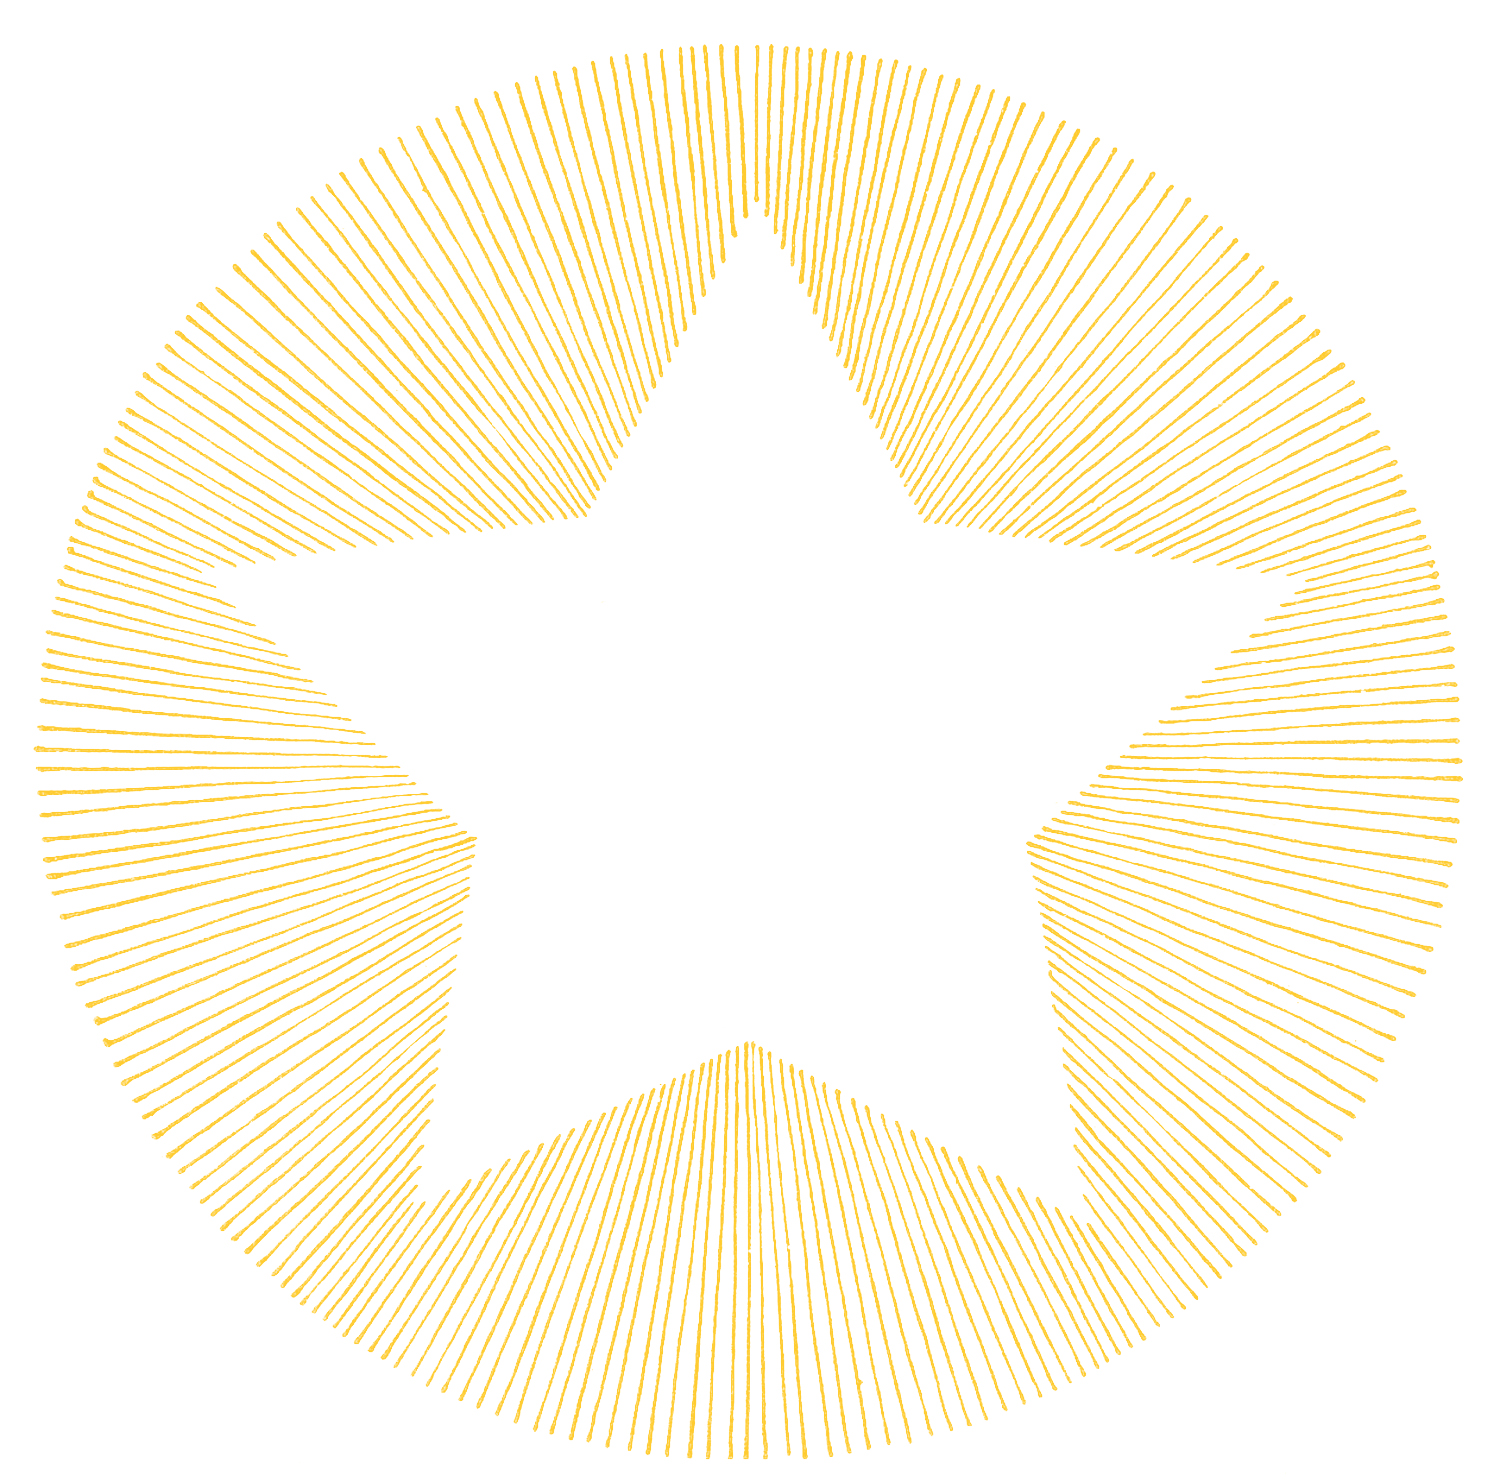 Christmas Star Images Clip Art.Star Clipart Star Images Free The Graphics Fairy